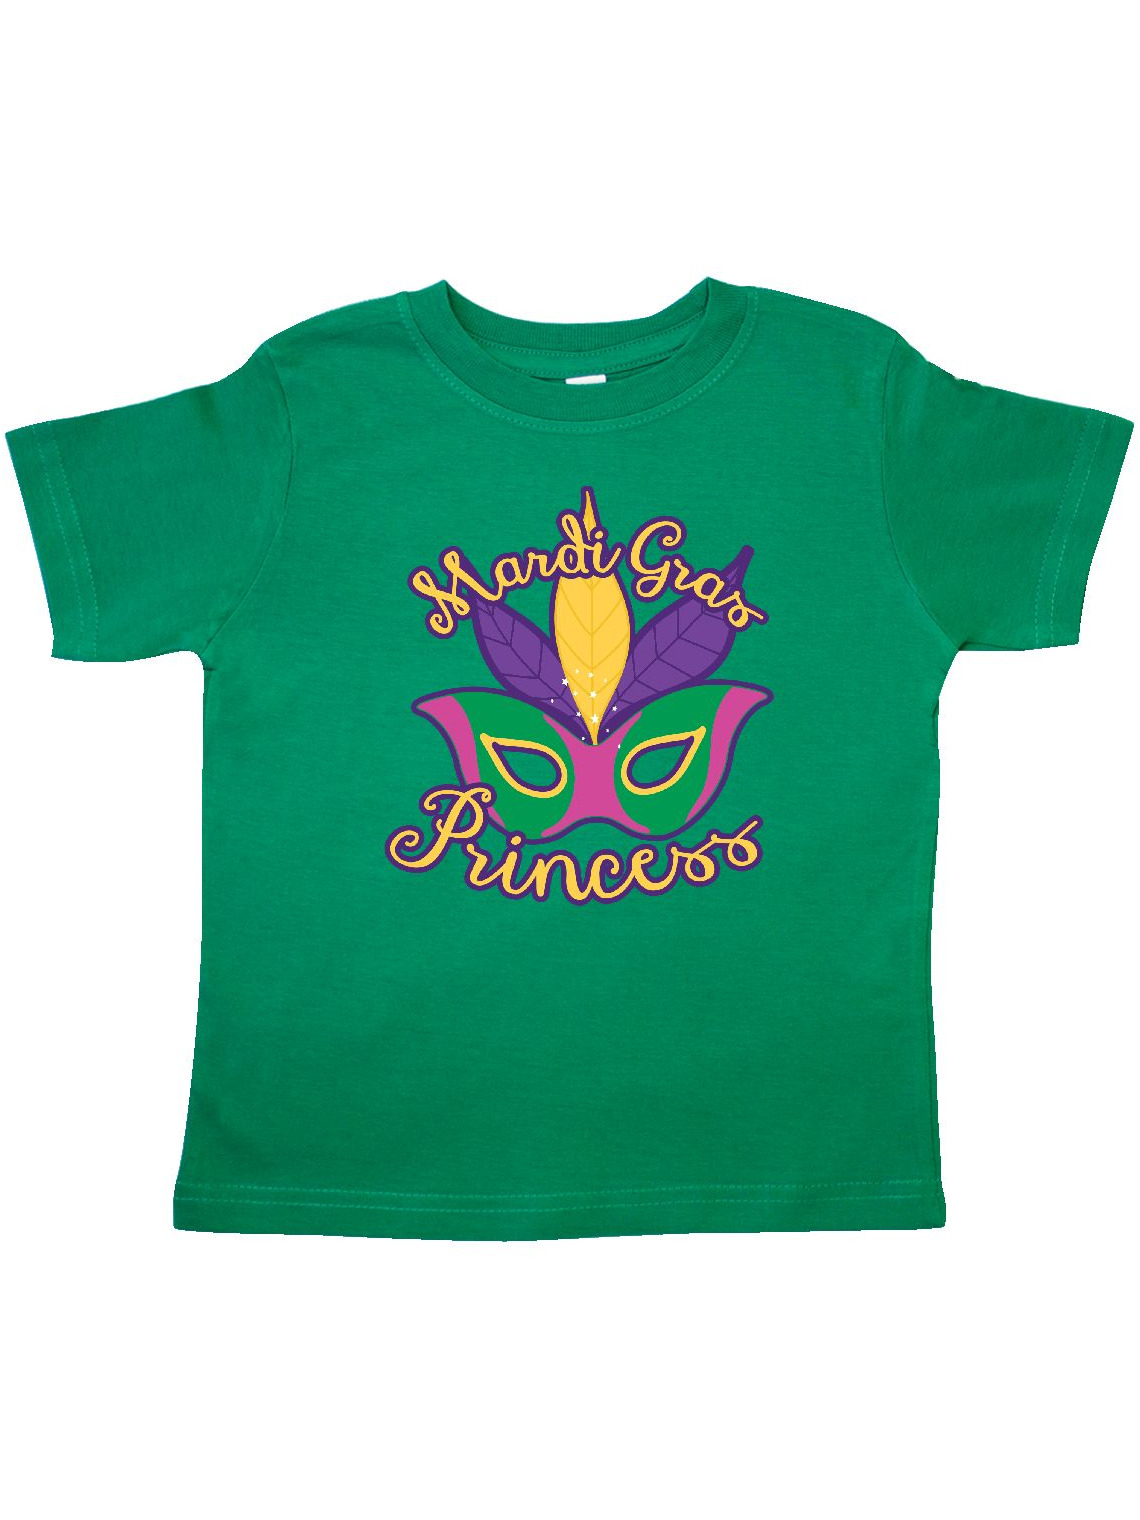 Mardi Gras Princess Toddler T-Shirt